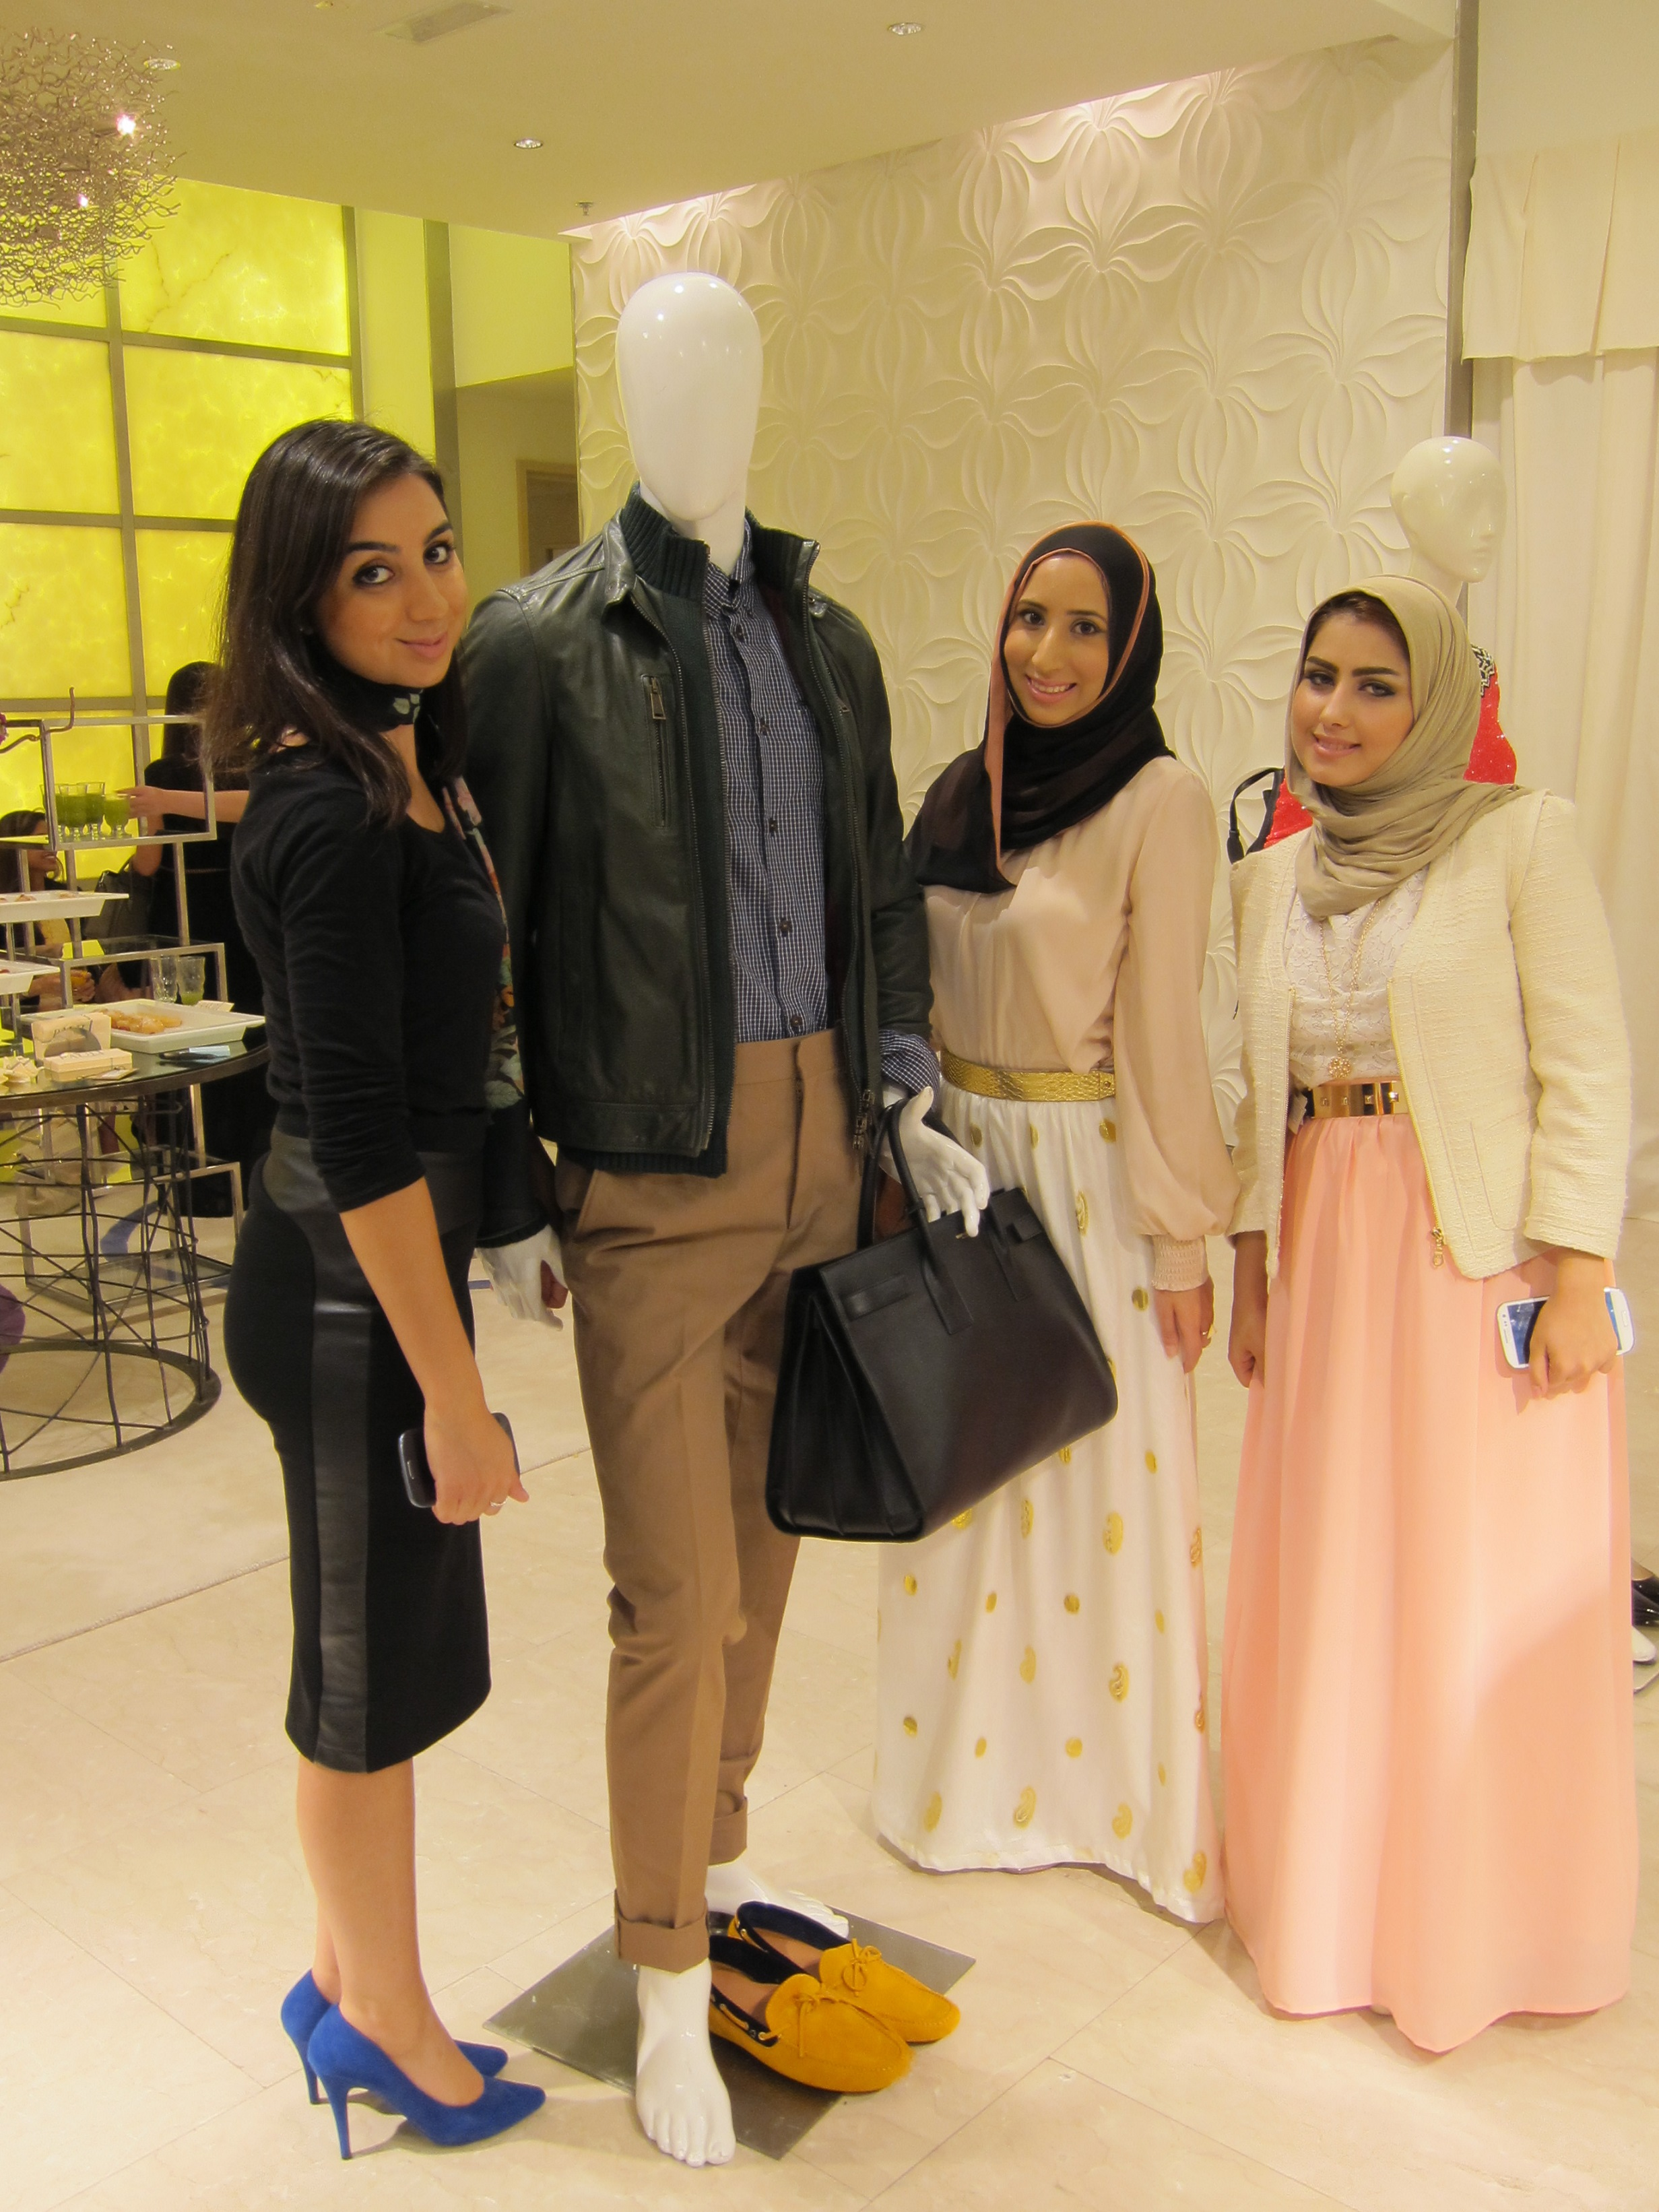 Photo with male mannequin